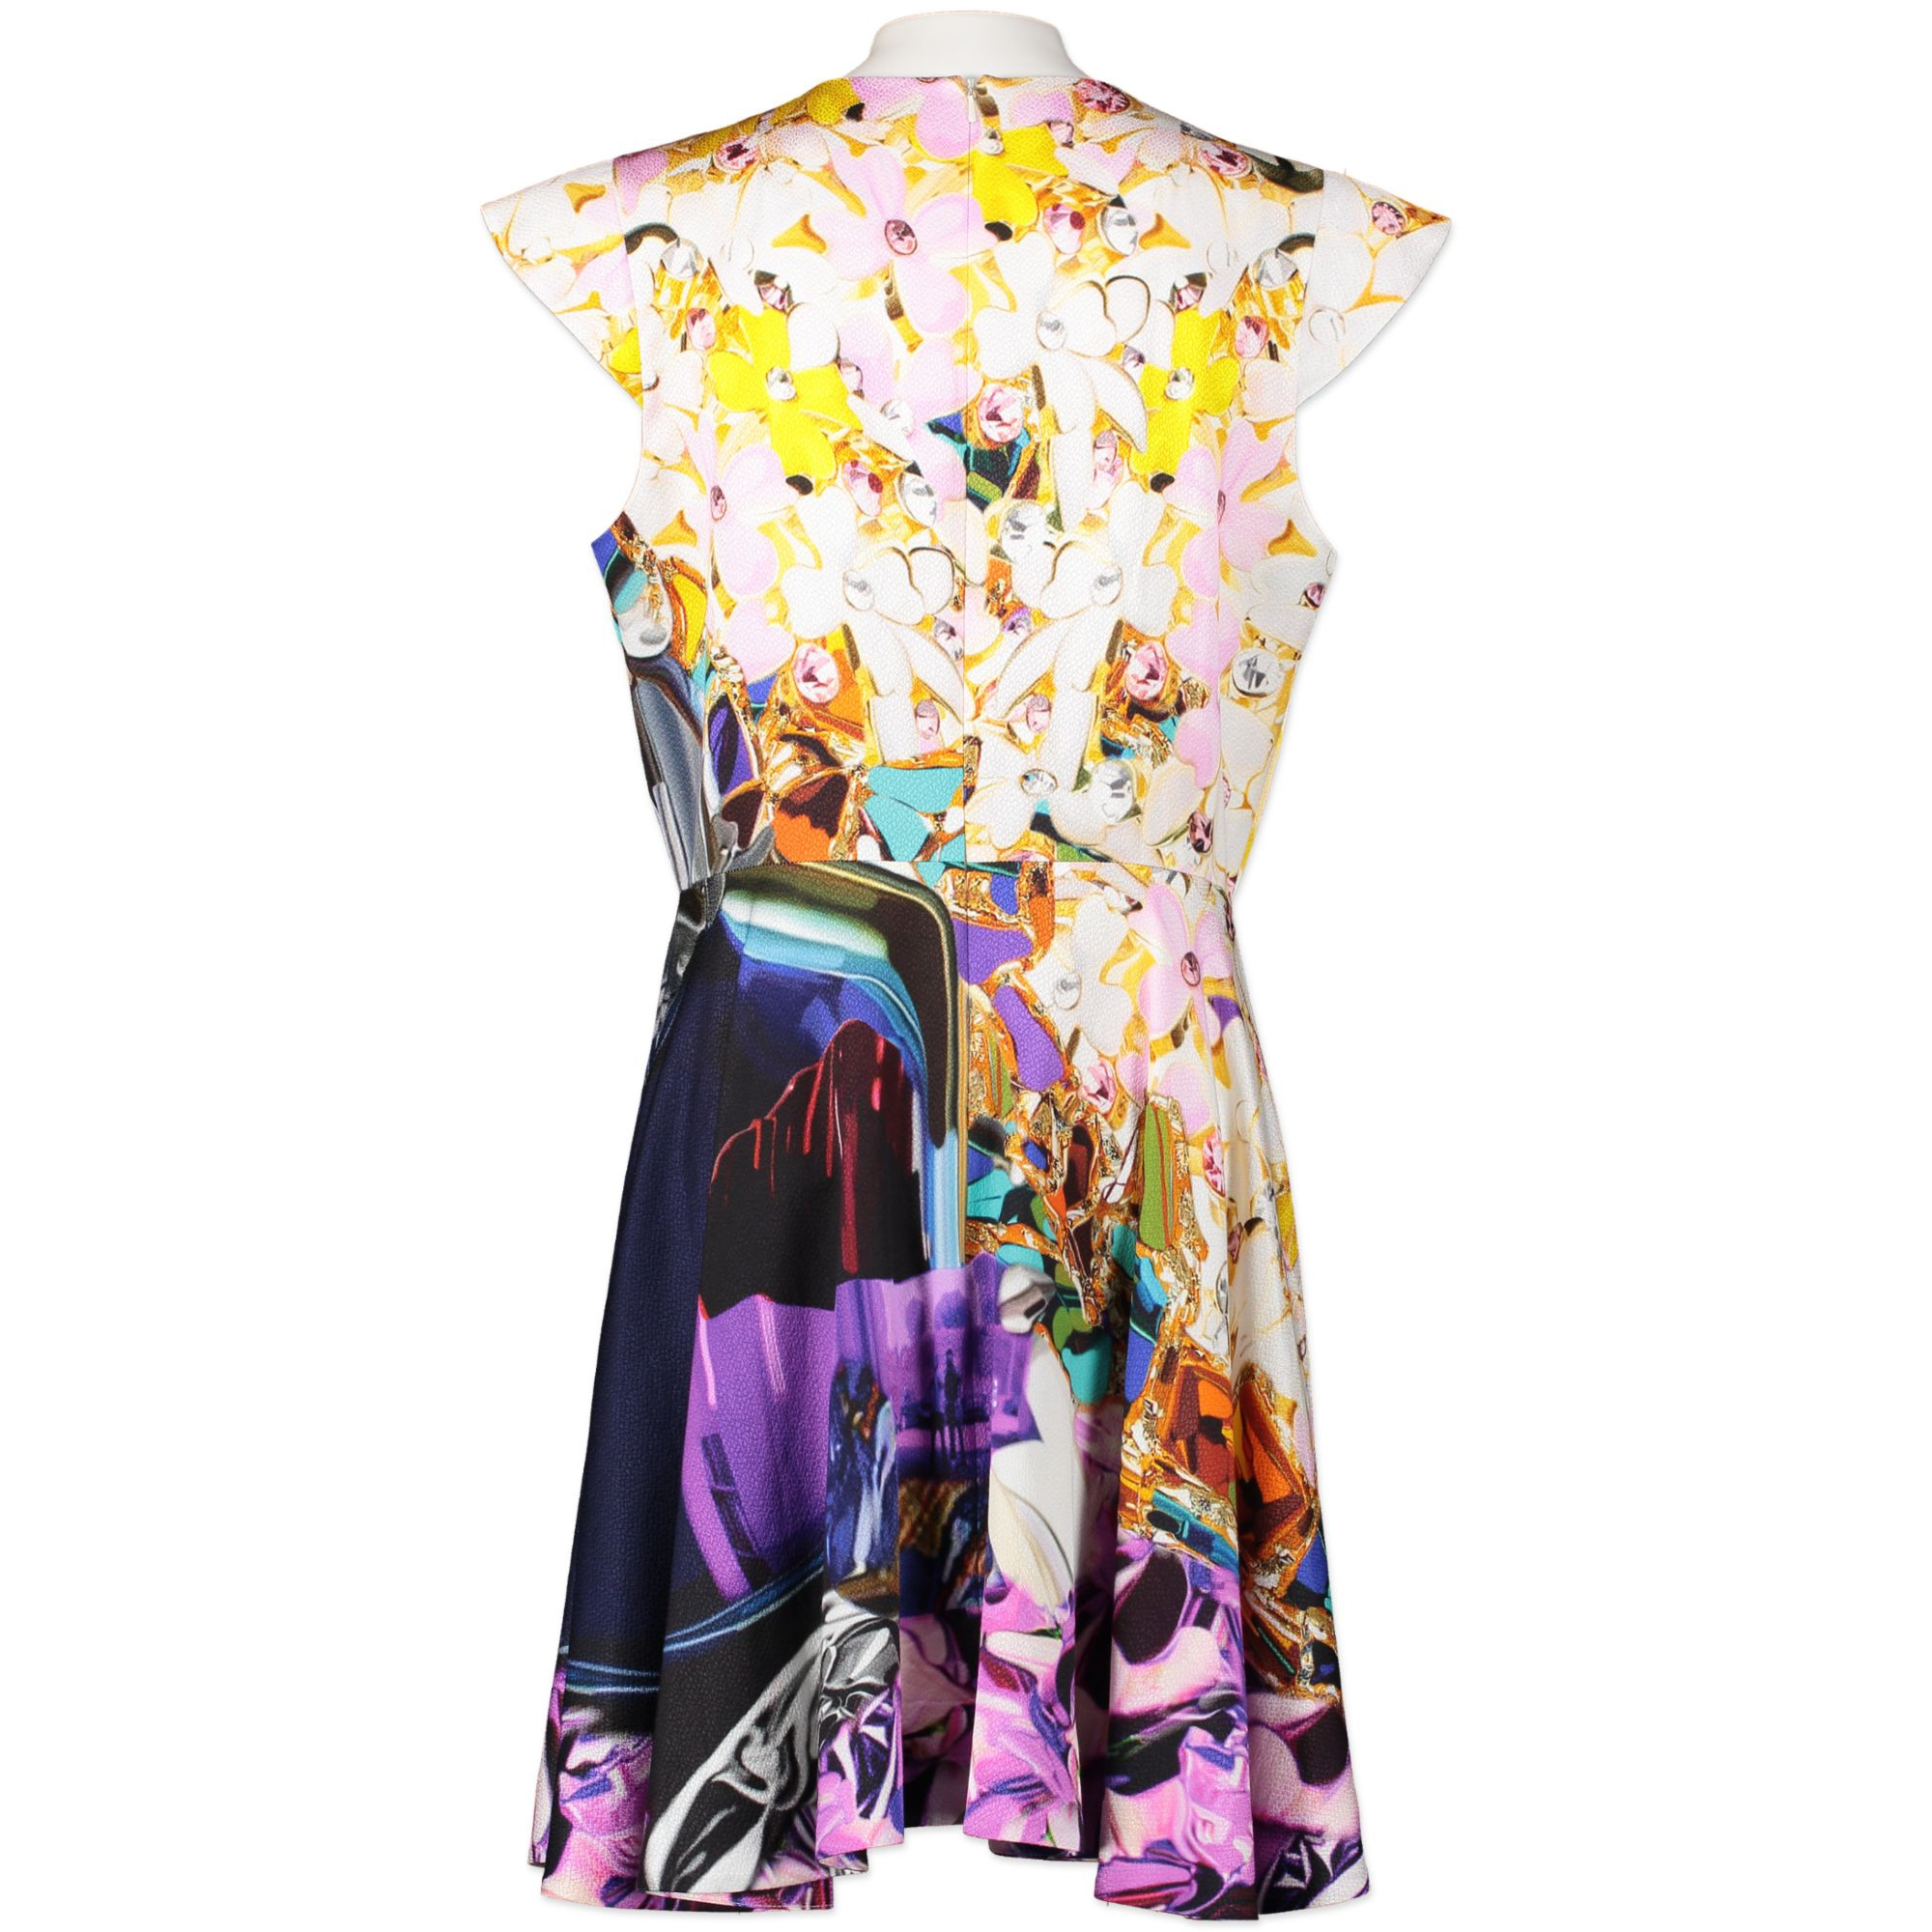 Mary Katrantzou Printed Dress for sale online at Labellov secondhand vintage designer bags online at Labellov